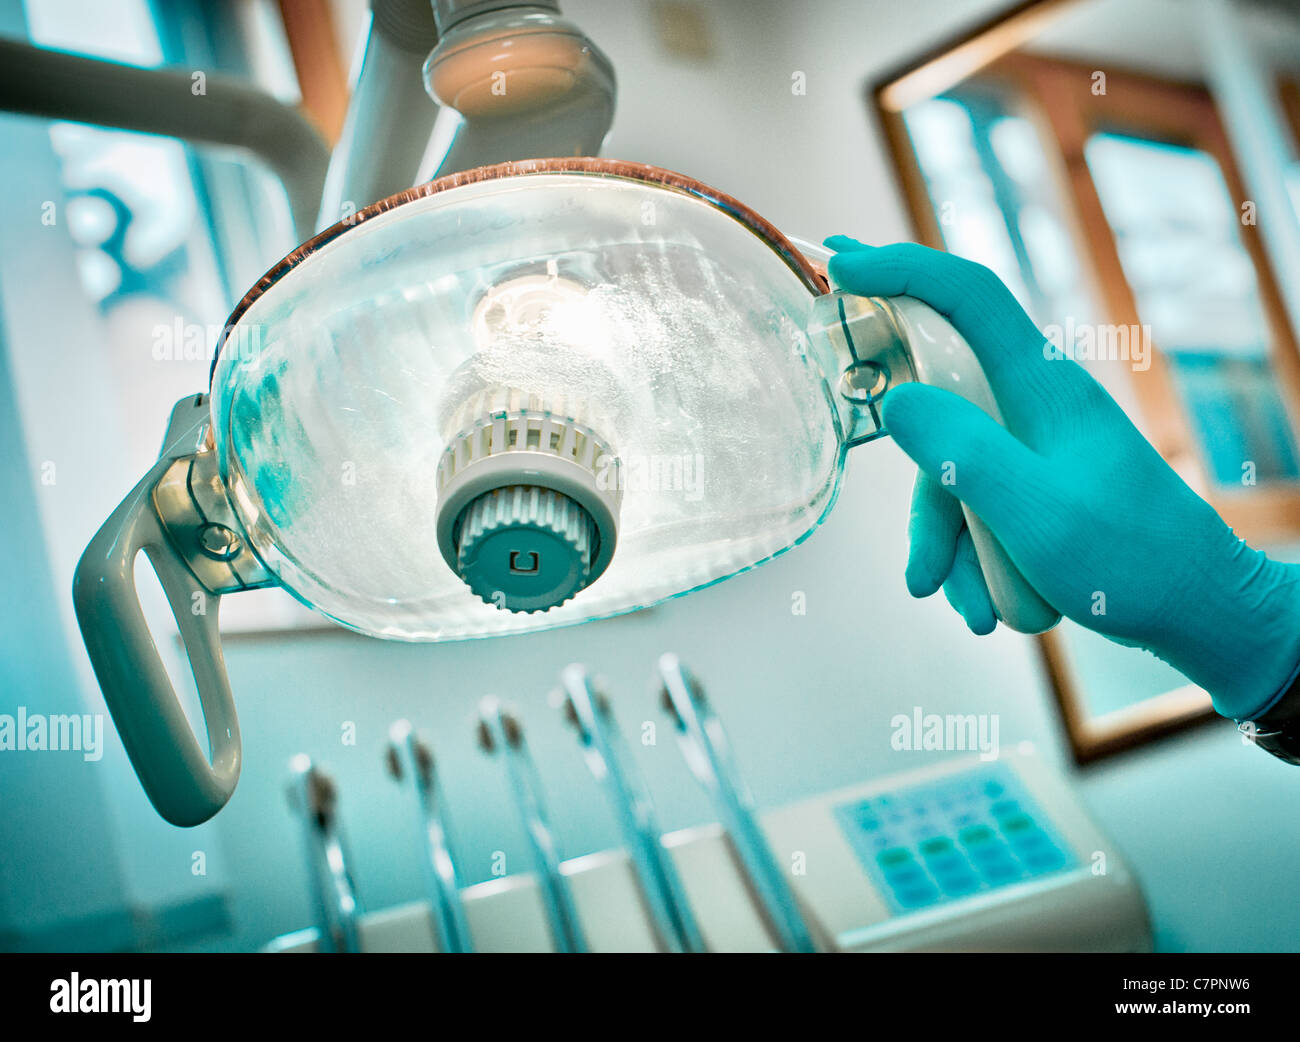 Dentist adjusting lamp in office - Stock Image